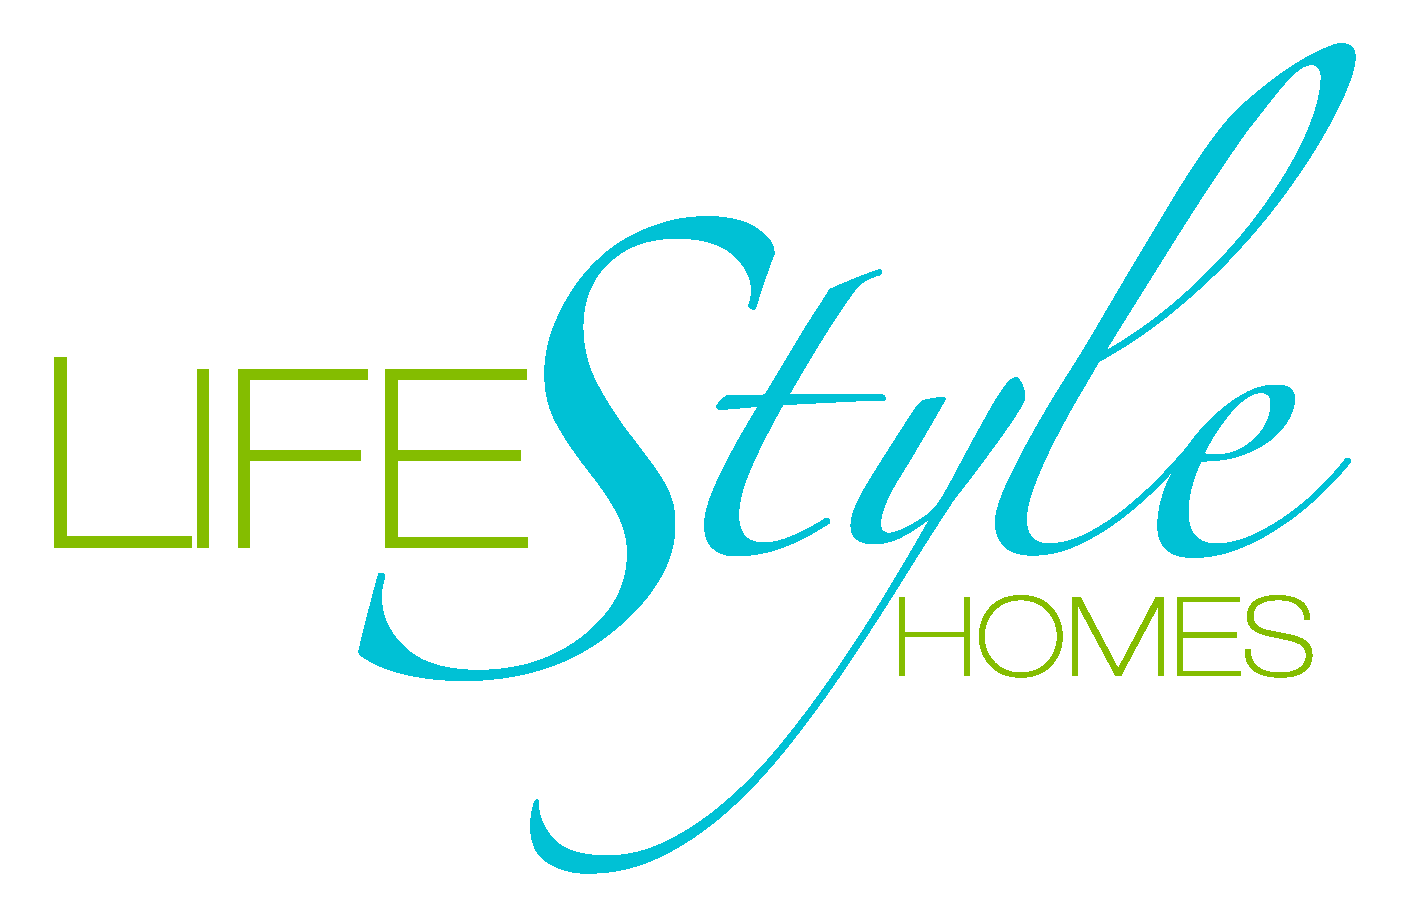 Lifestyle Homes logo Kite Media project